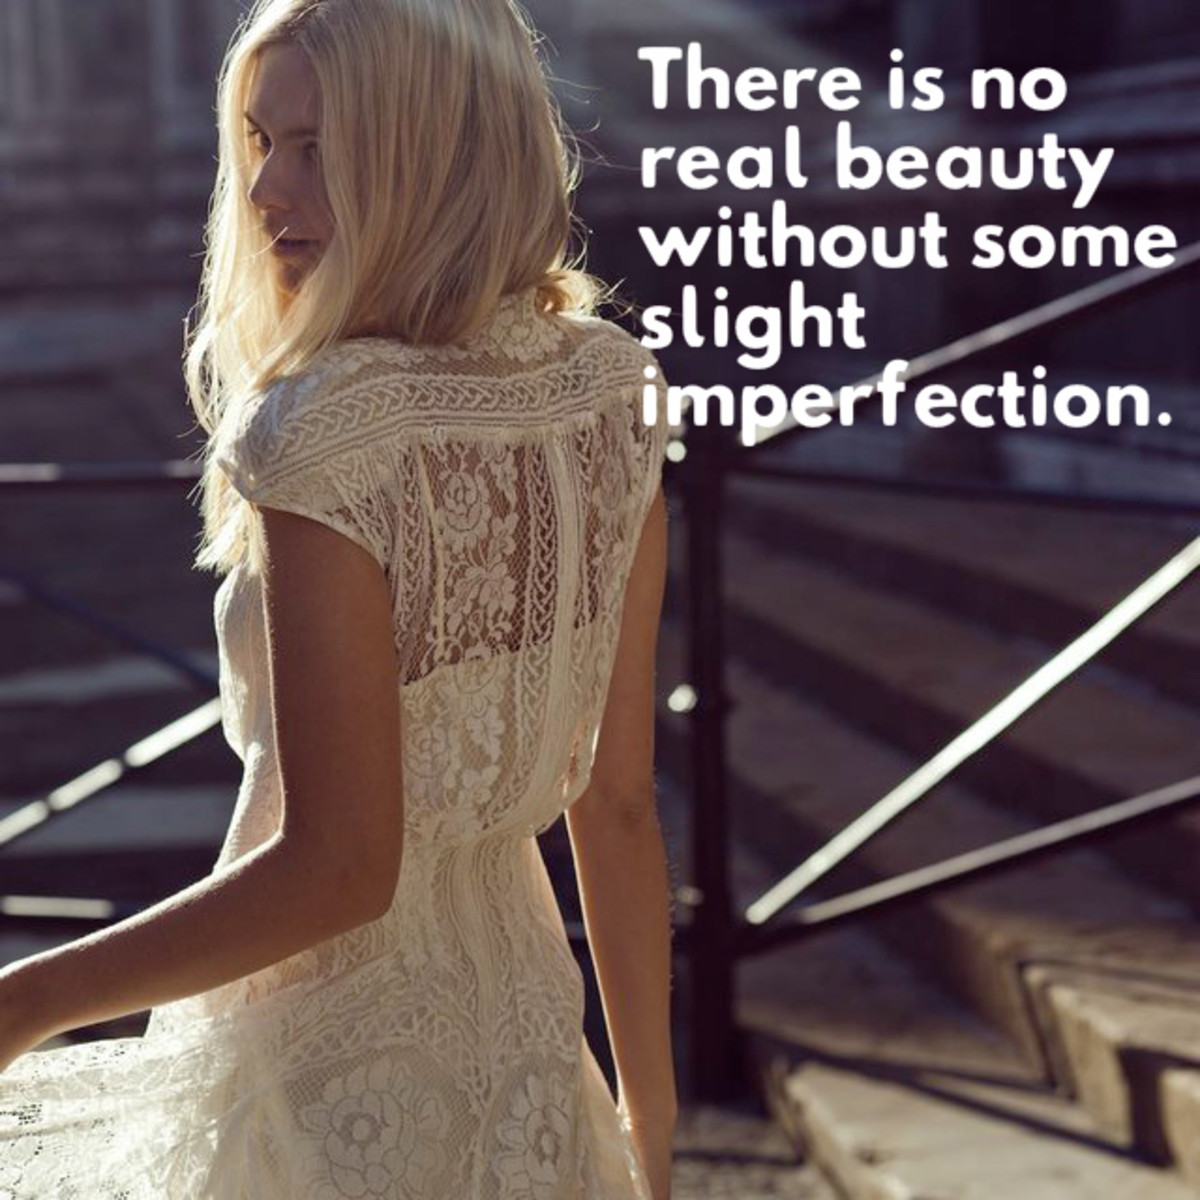 """There is no real beauty without some slight imperfection."" - James Salter, American writer"